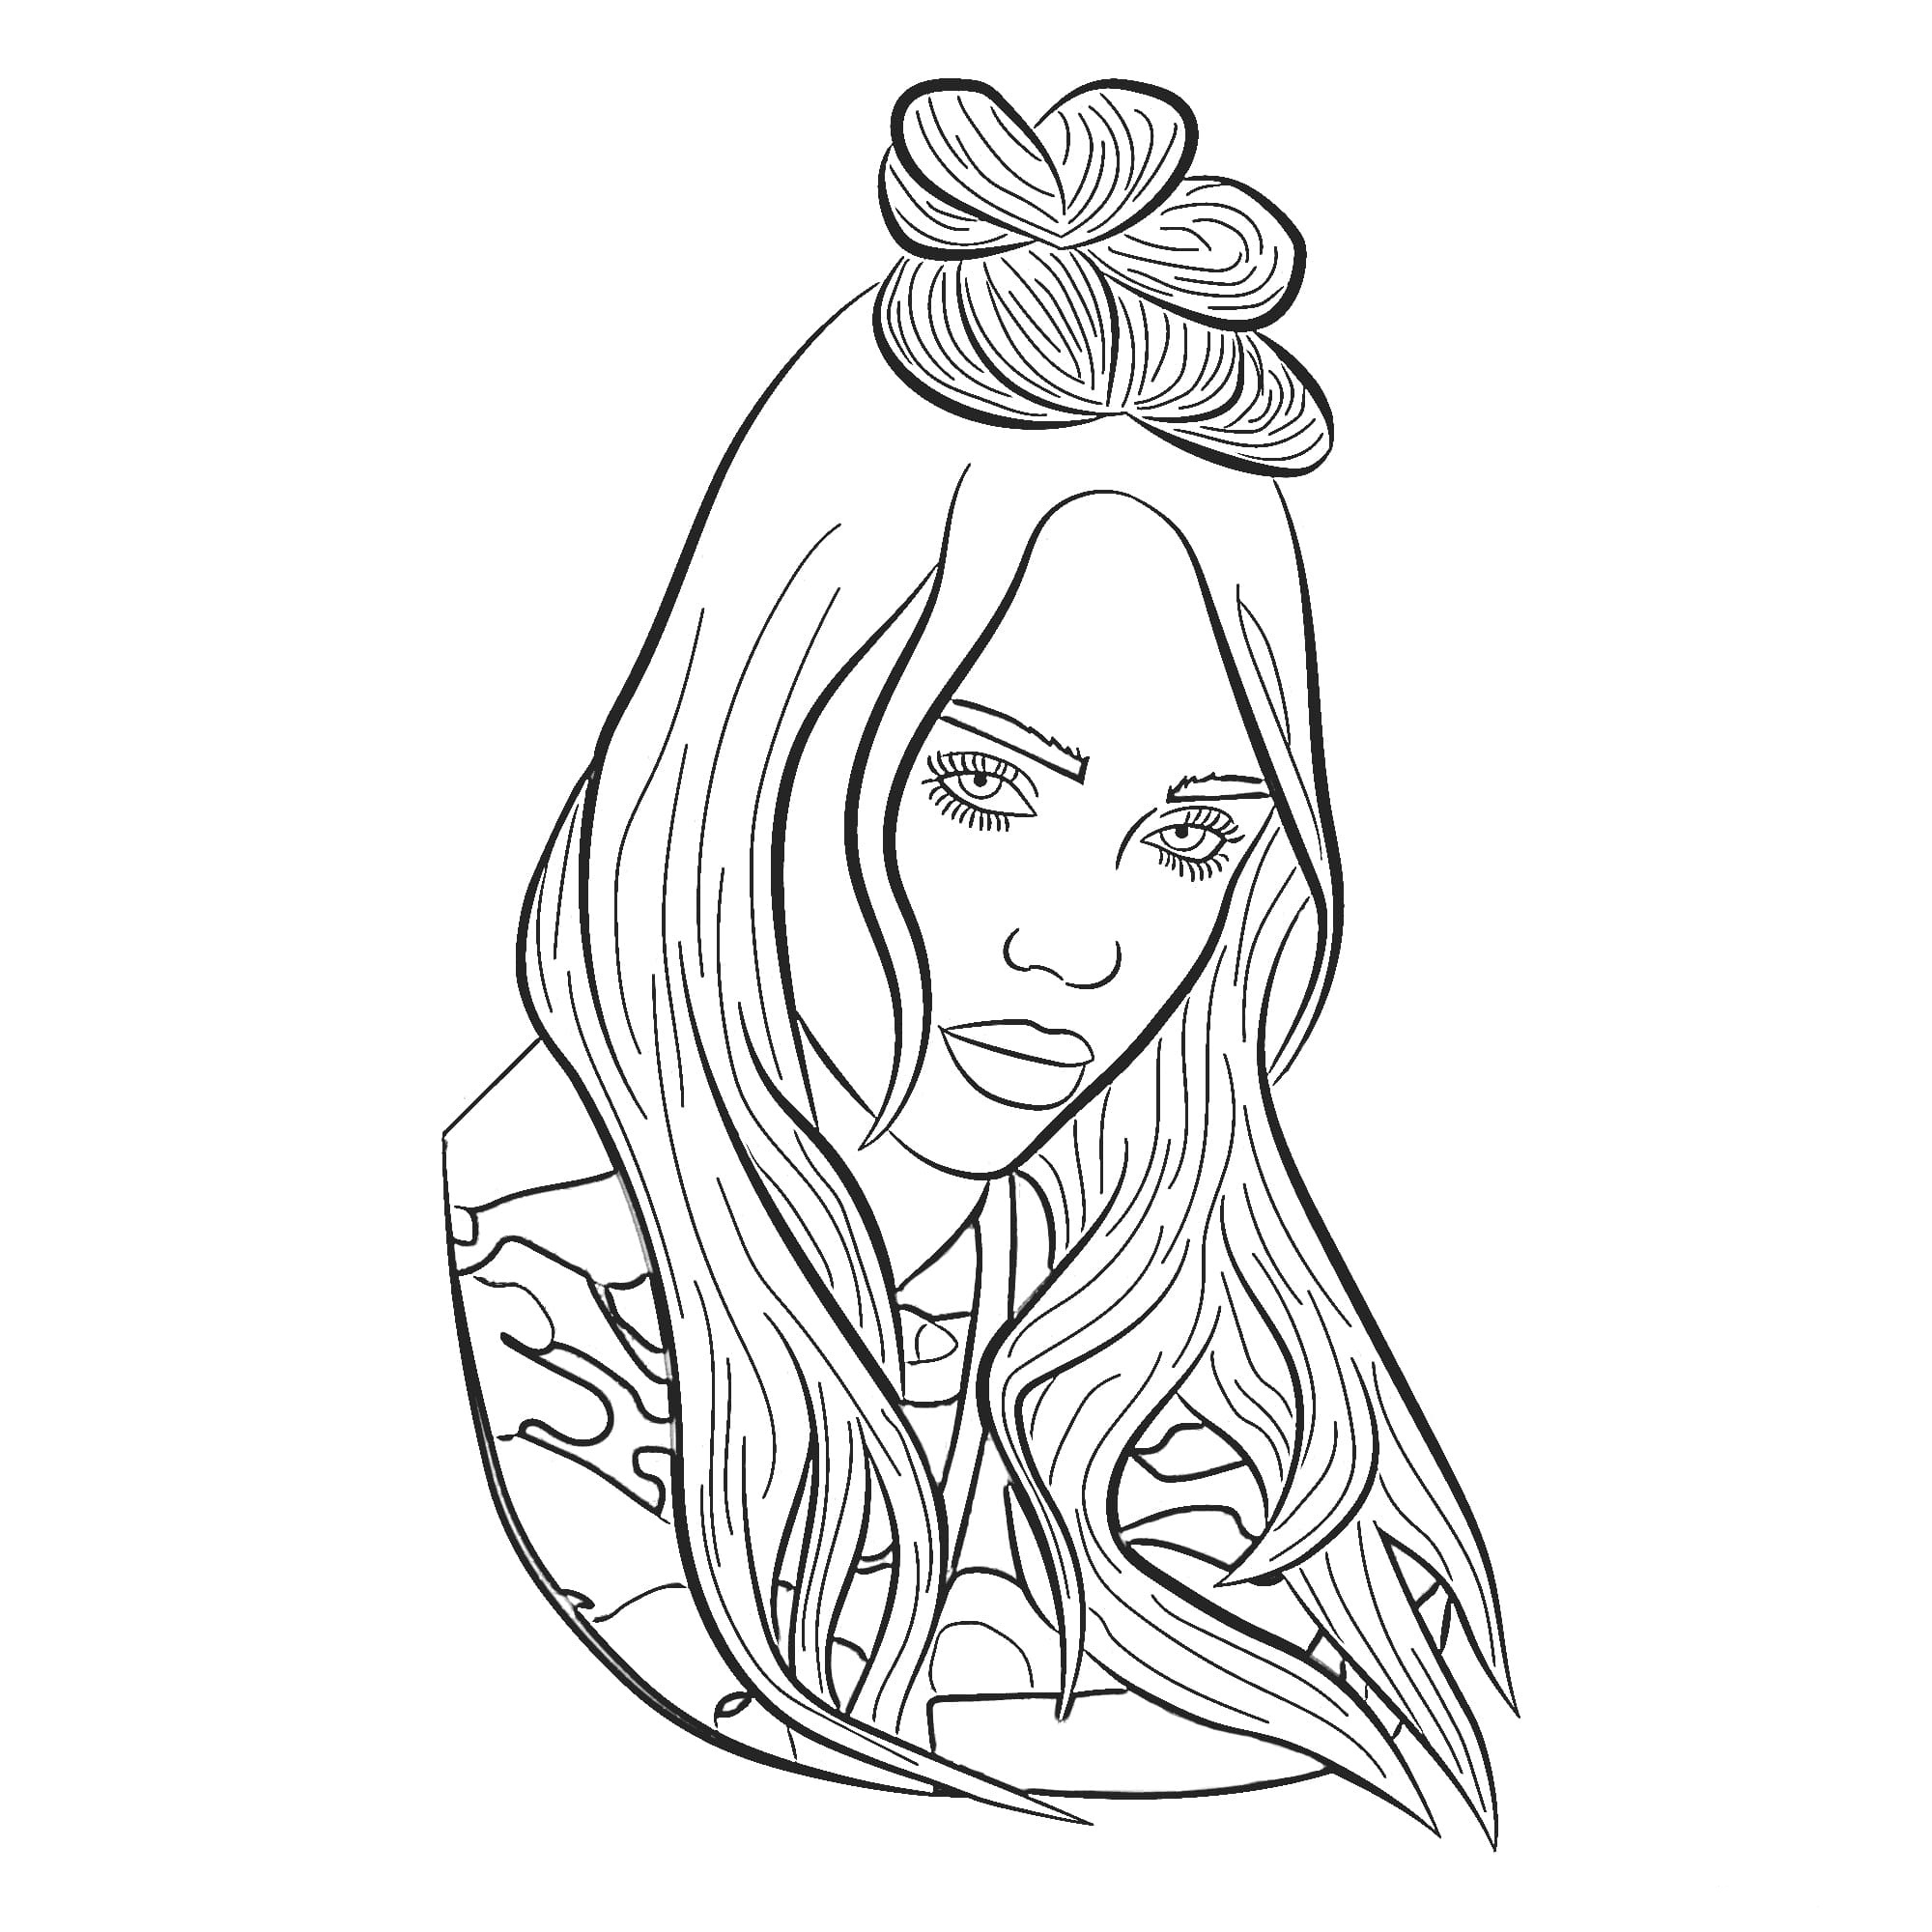 Famous singers coloring pages with pop stars Topcoloringpages | 2000x2000